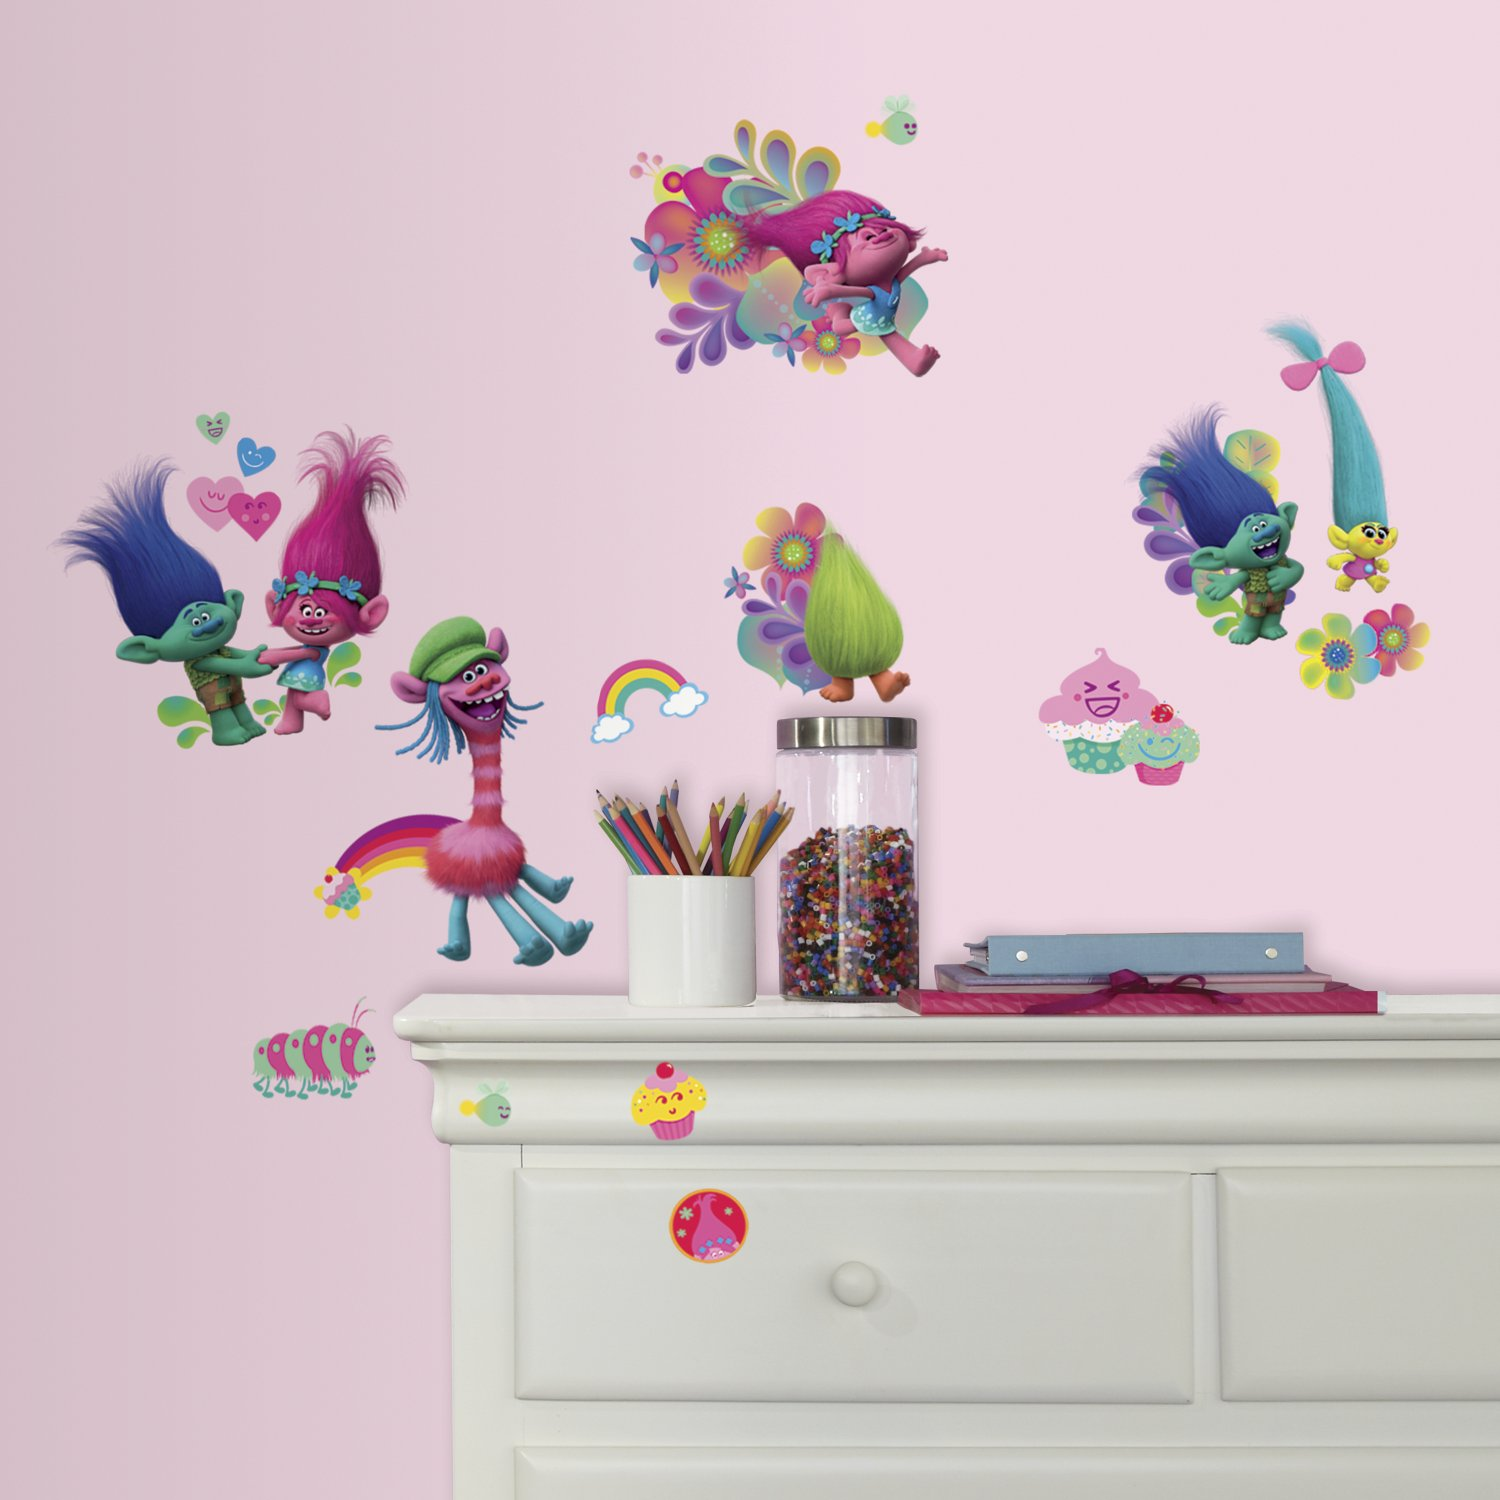 RoomMates Trolls Peel And Stick Wall Decals